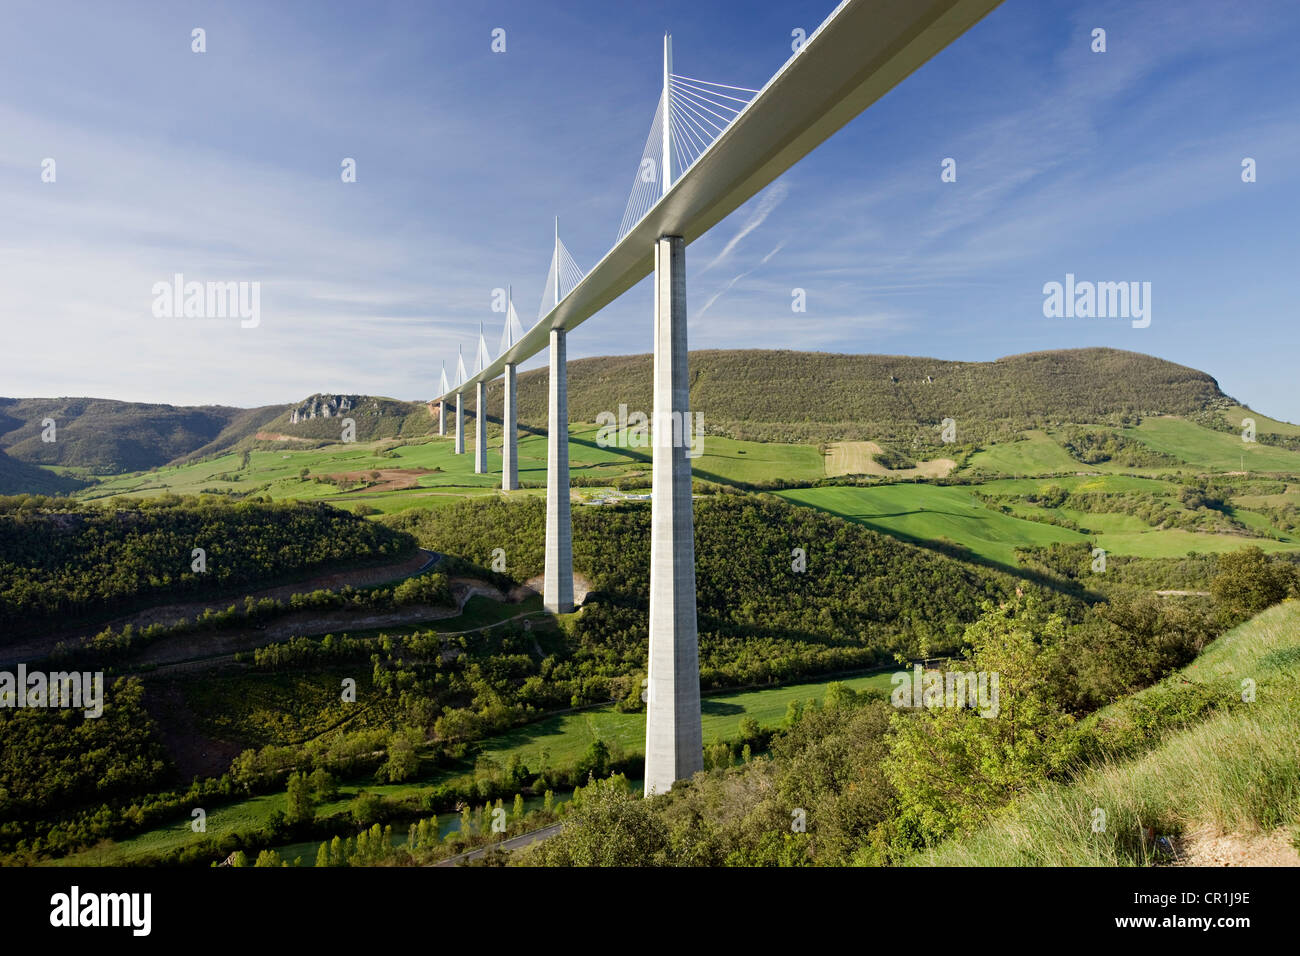 France, Aveyron, Millau Viaduct (A75 Motorway) built by Michel Virlogeux and Norman Foster, located between Causses - Stock Image